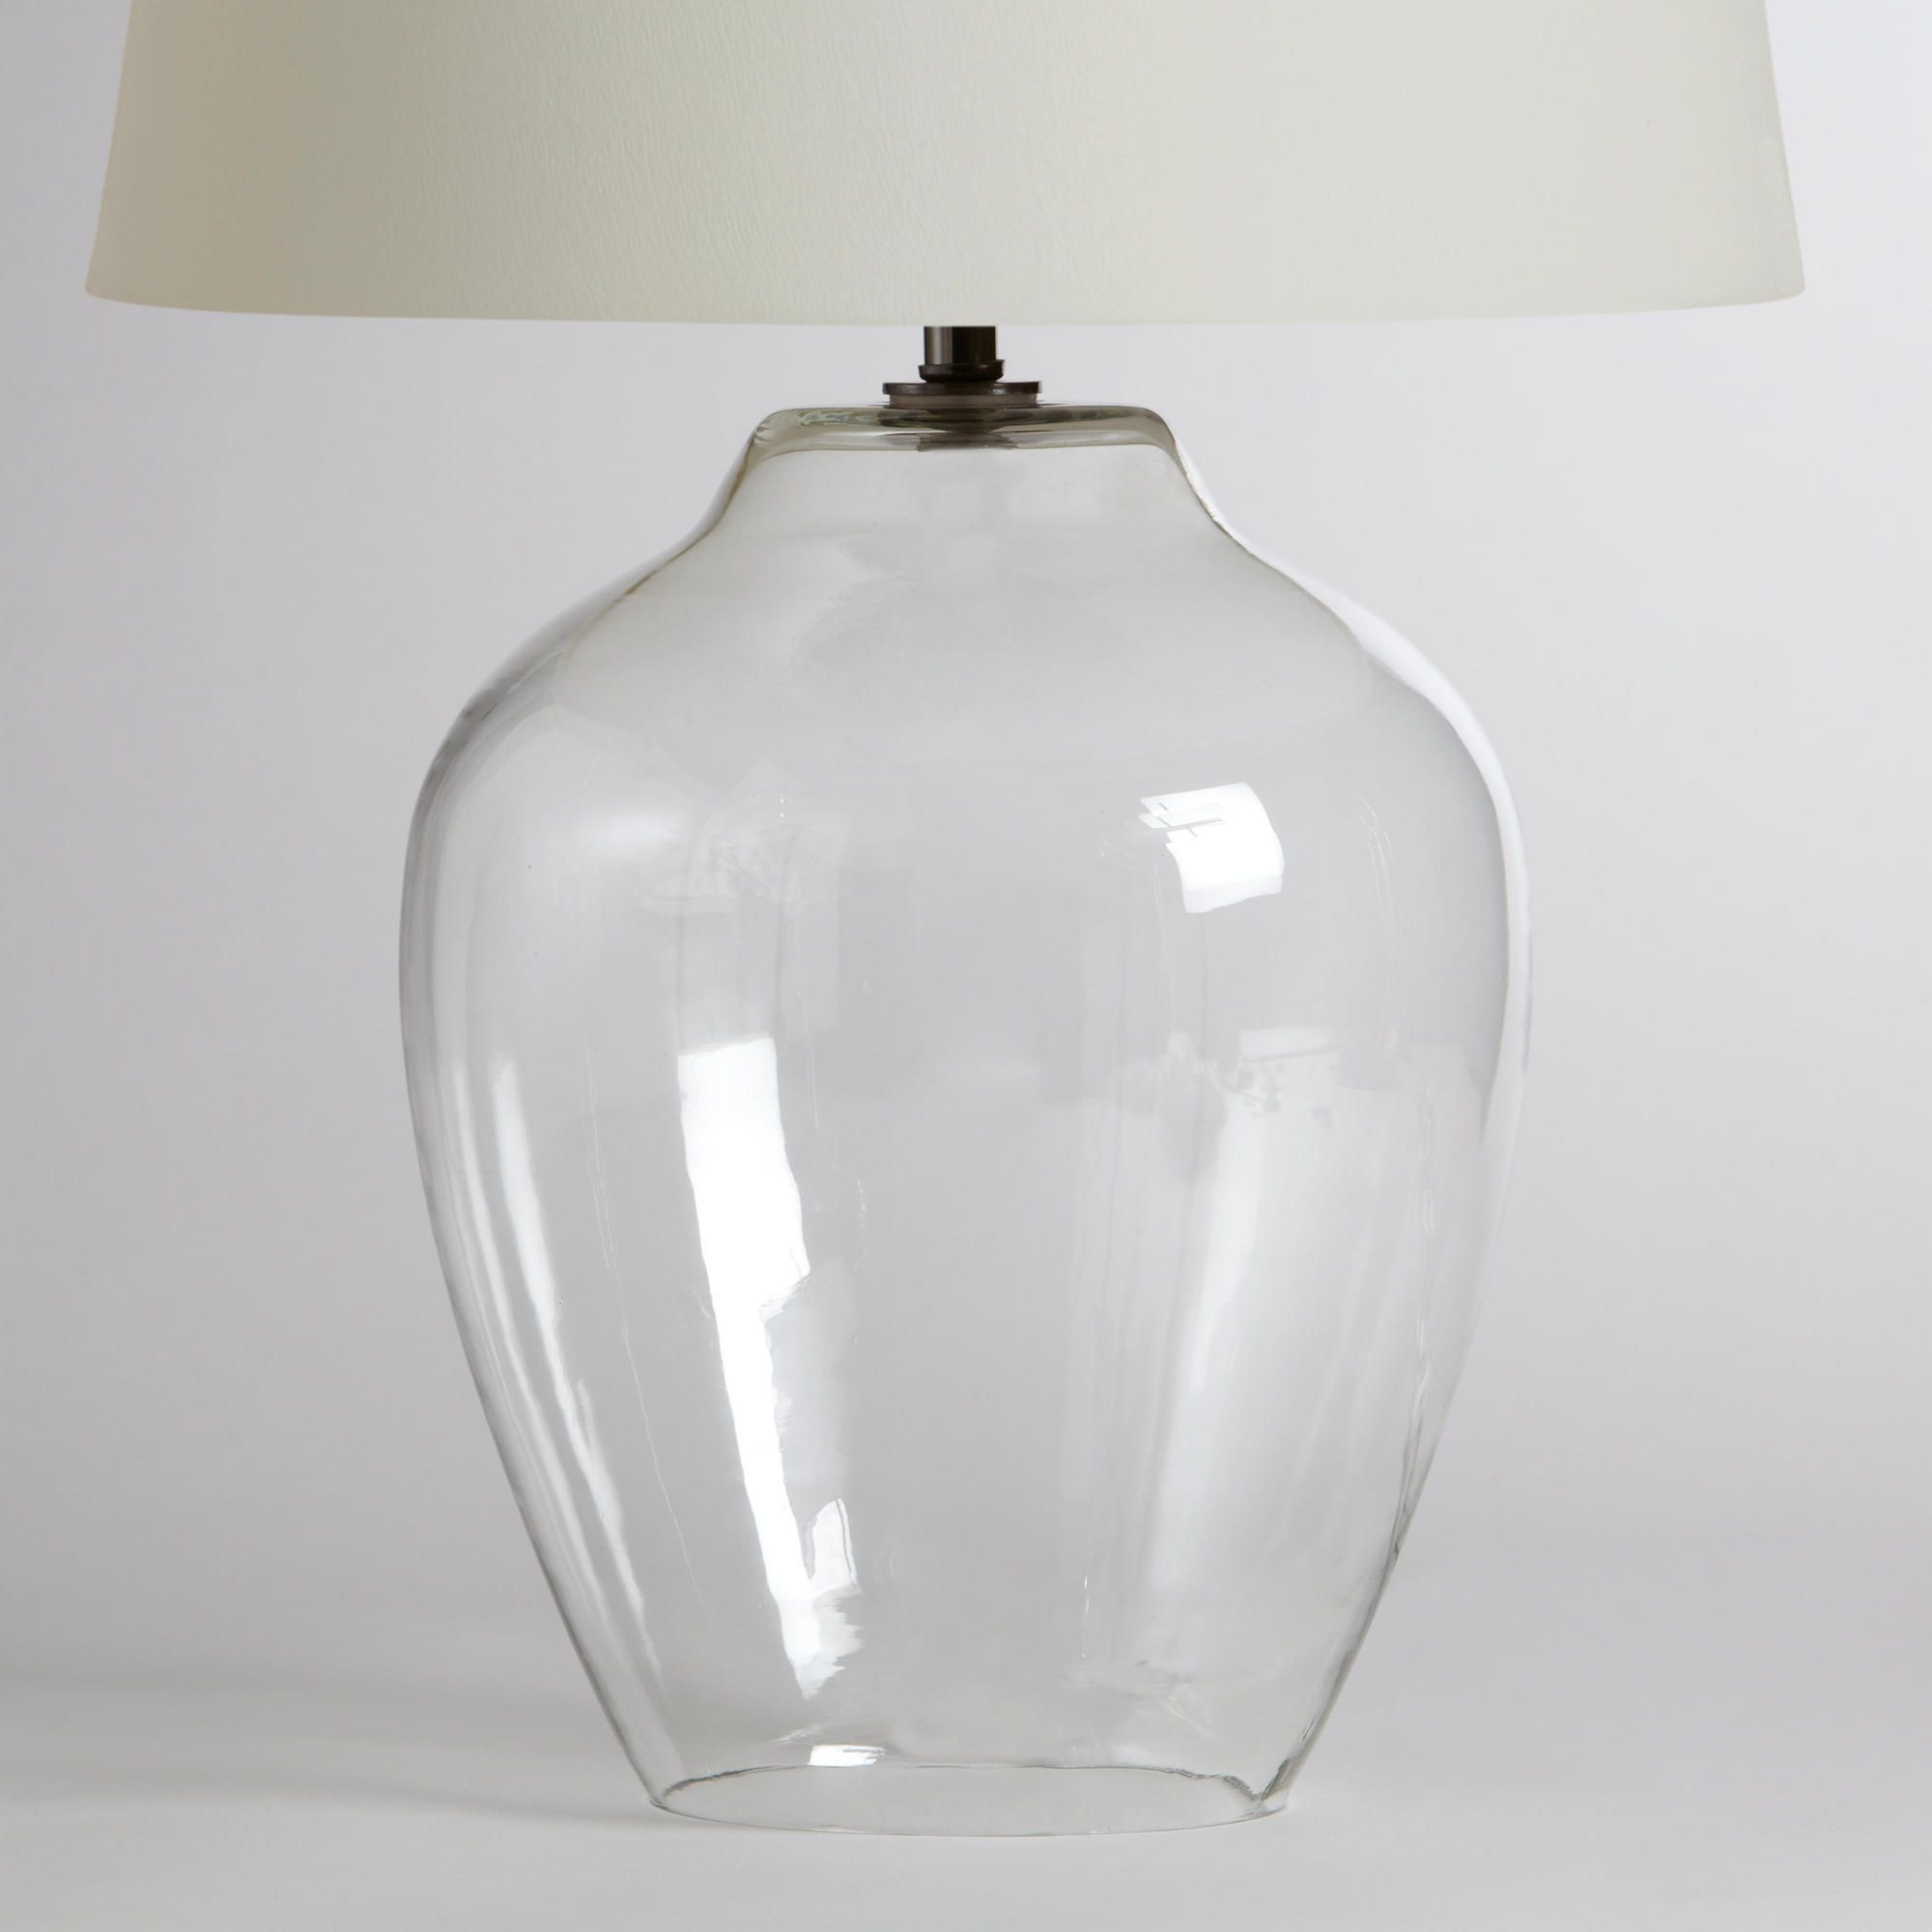 Clear glass table lamp base world market home spruce pinterest clear glass table lamp base world market aloadofball Image collections